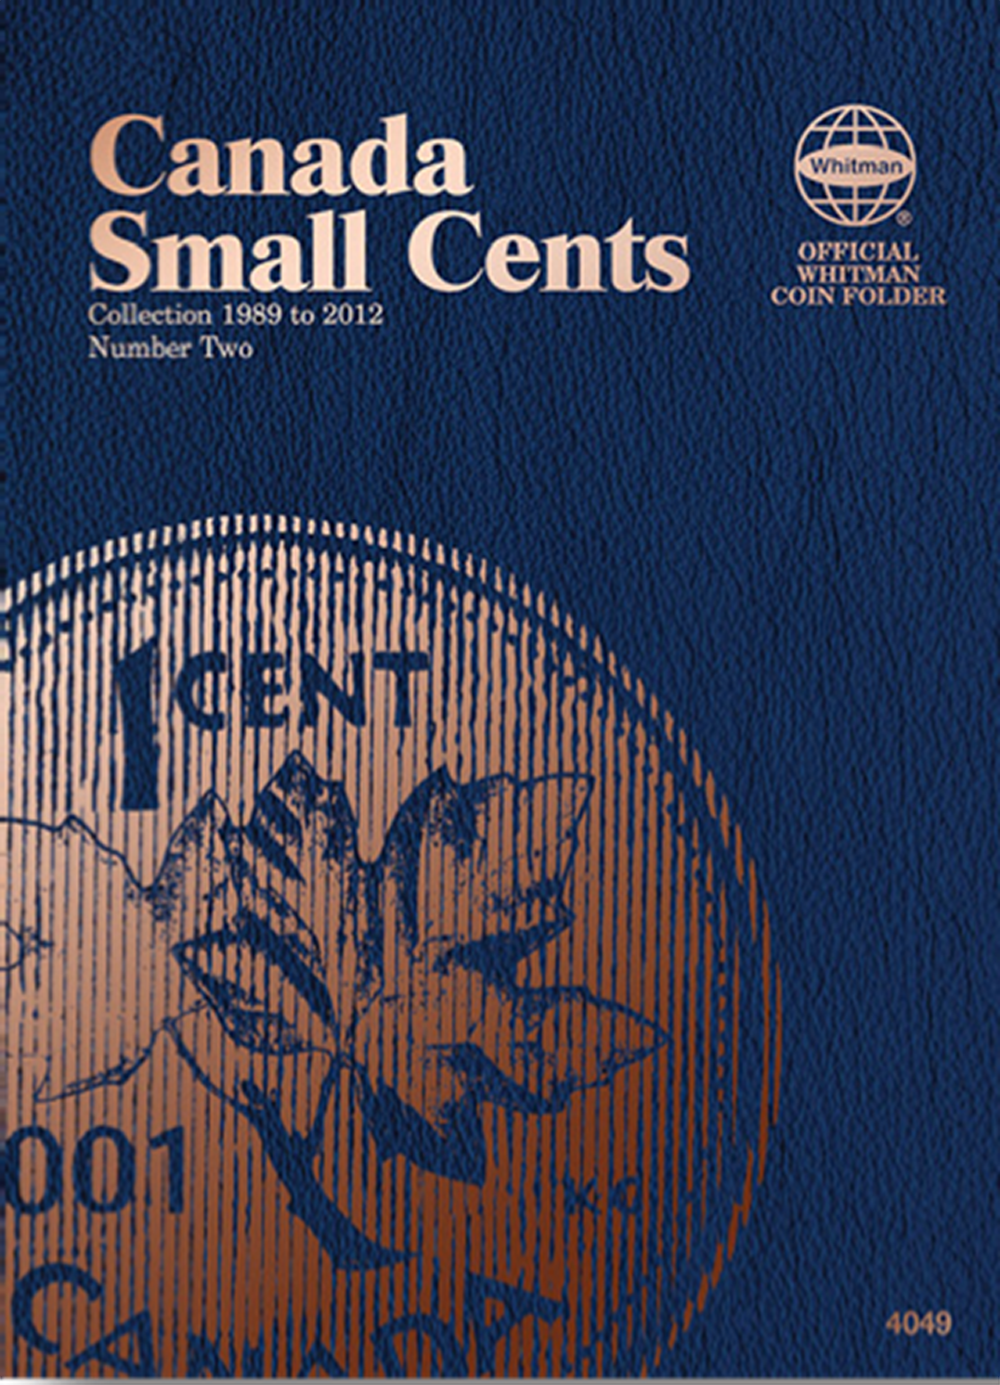 Canadian Small Cents 1989-2012